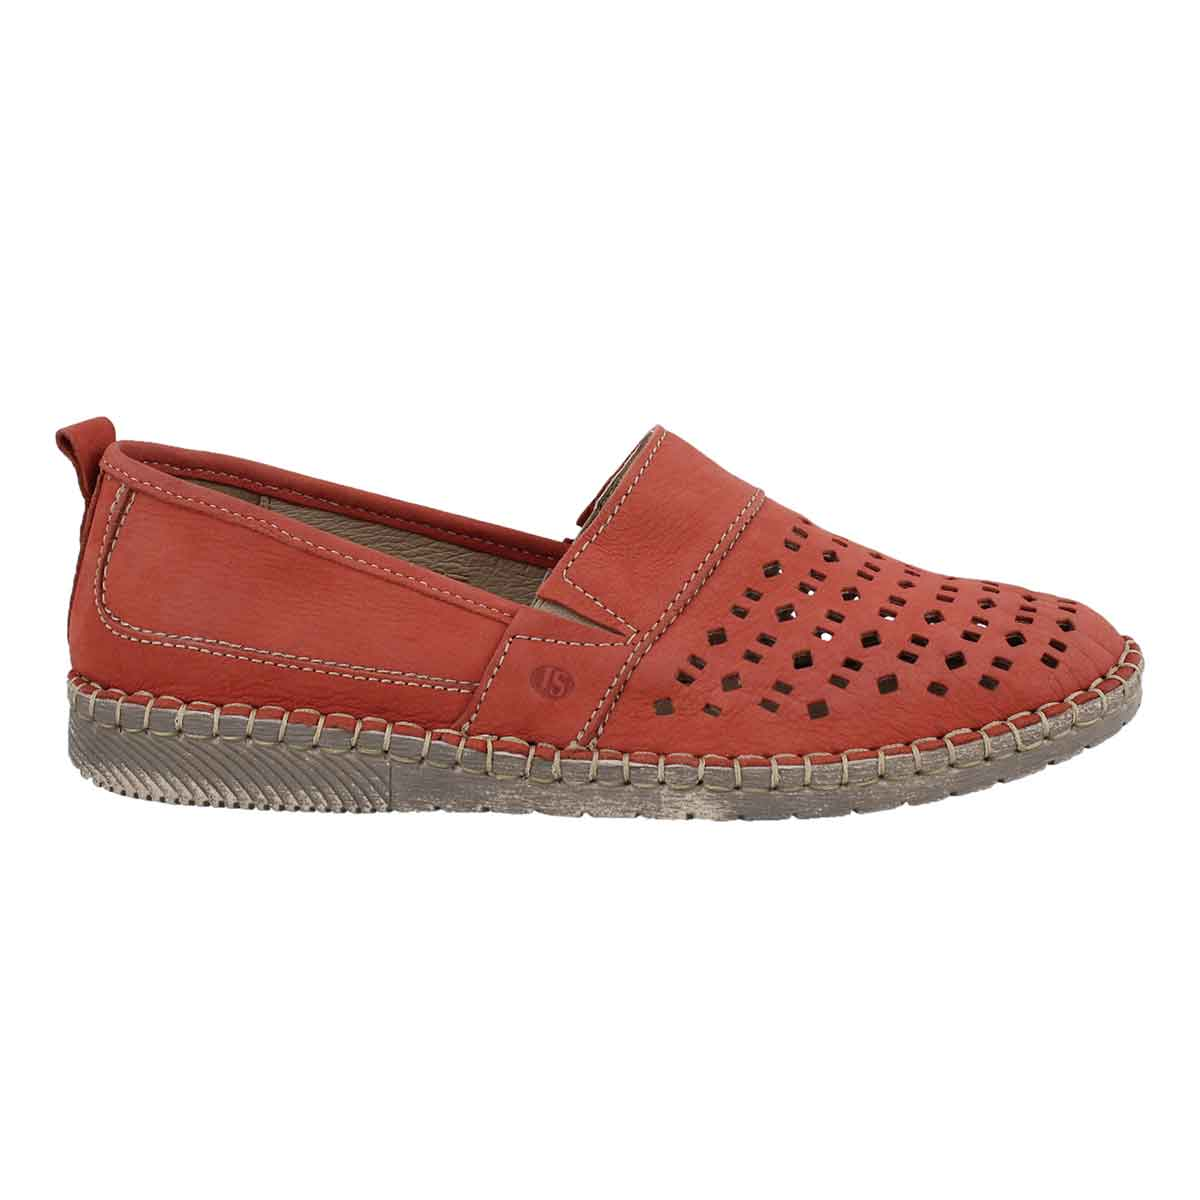 Lds Sofie 27 red slip on shoe